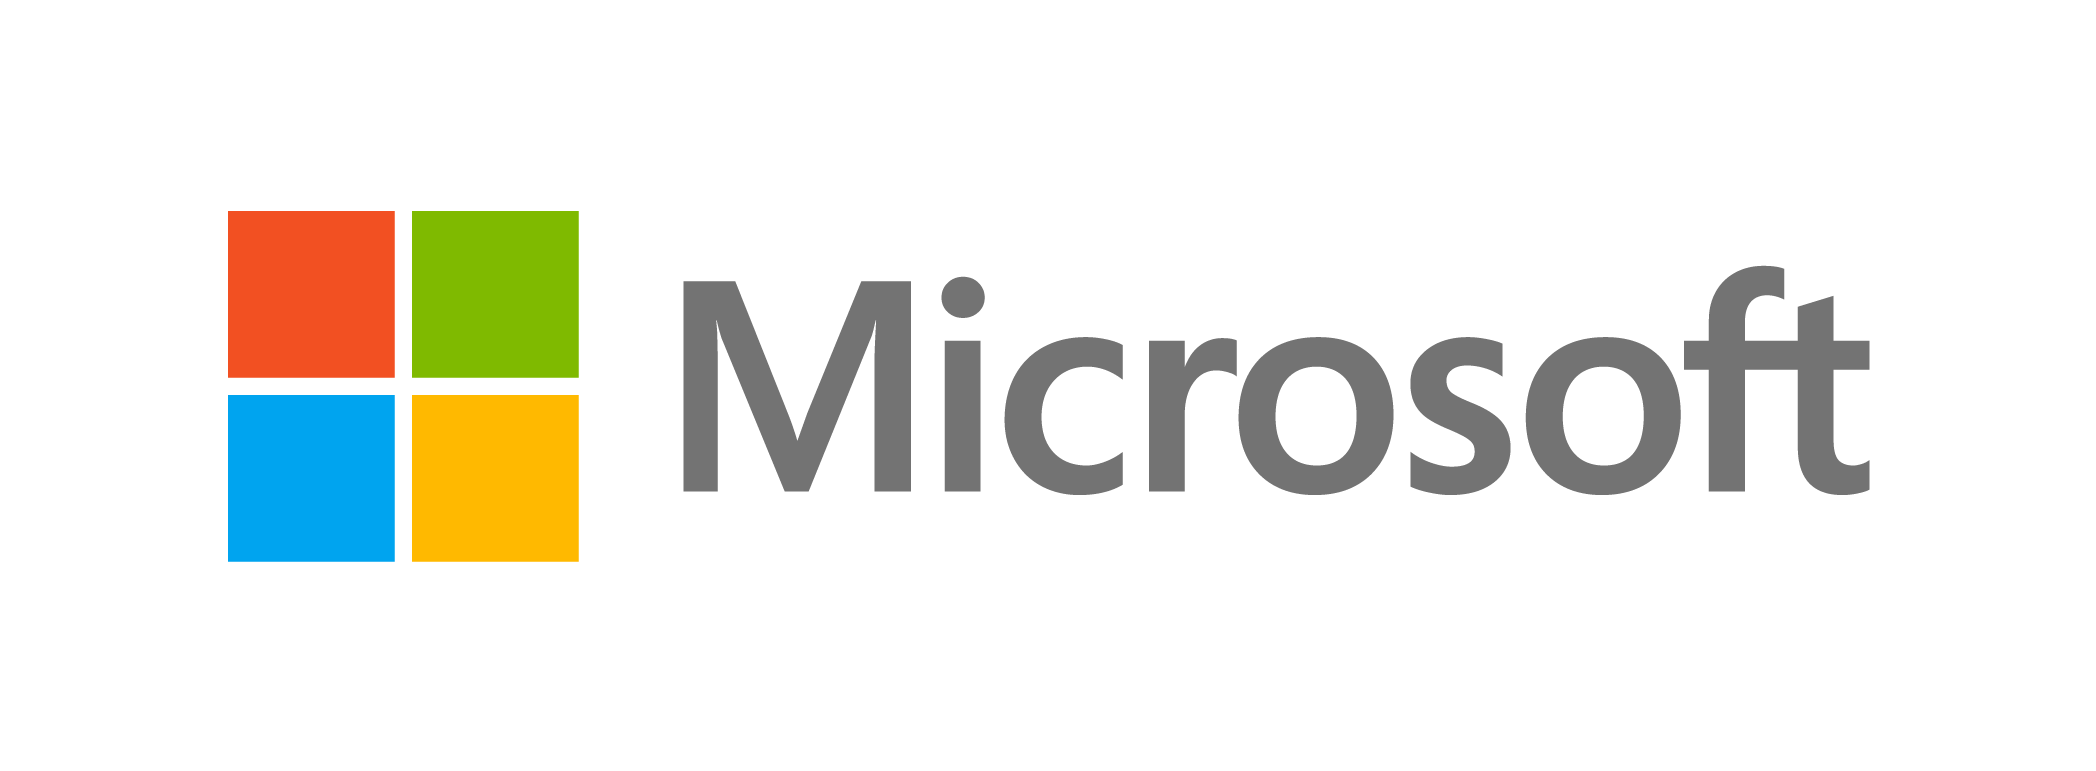 Microsoft Donates More Than $3 Million in Software to Aid Low-Income Students Seeking Post-Secondary Education Image.